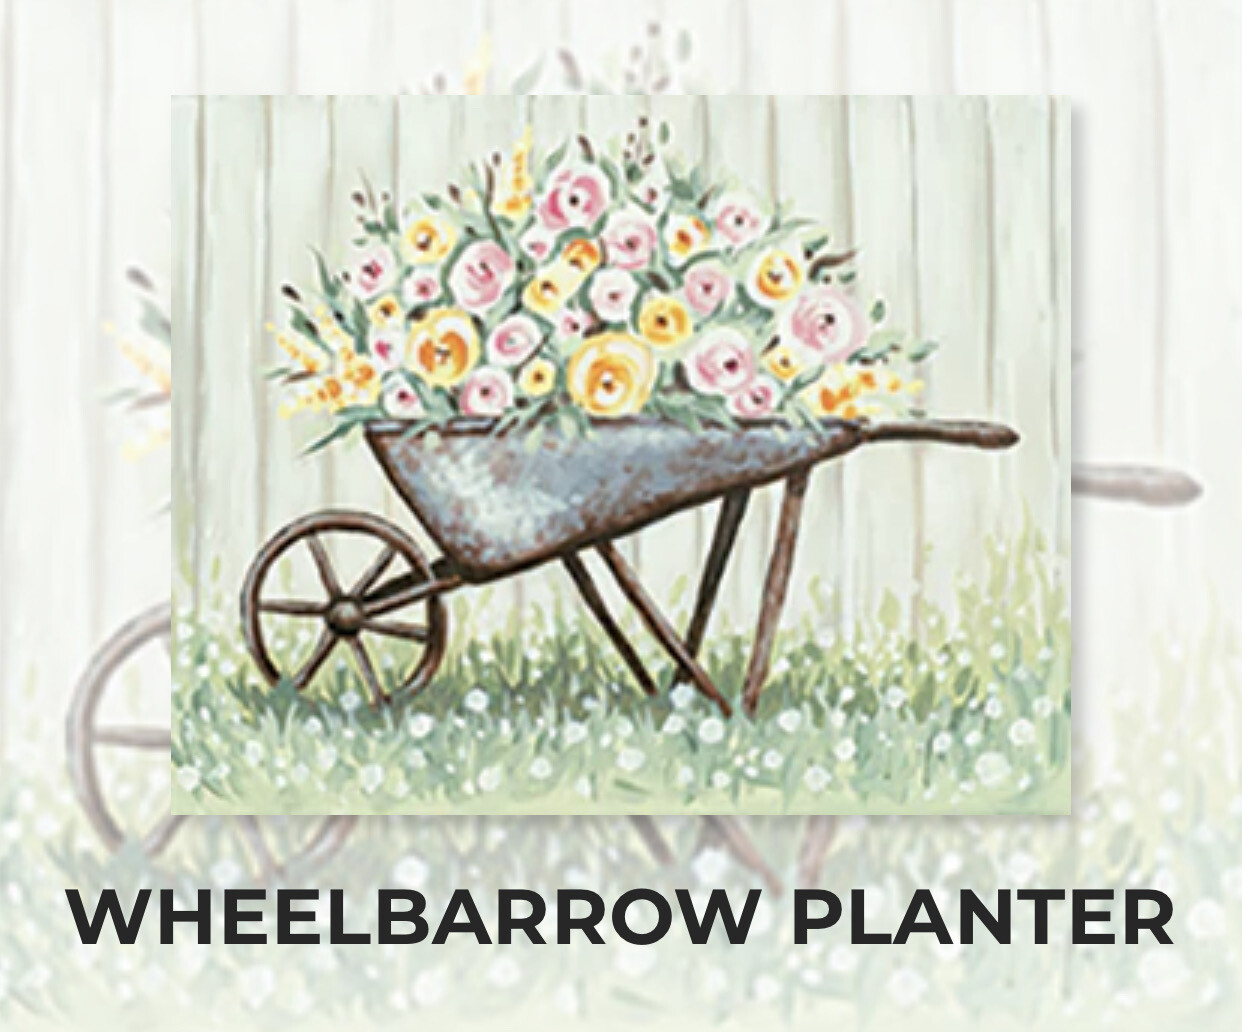 Wheelbarrow Planter ADULT Acrylic Paint On Canvas DIY Art Kit - 3 Week Special Order